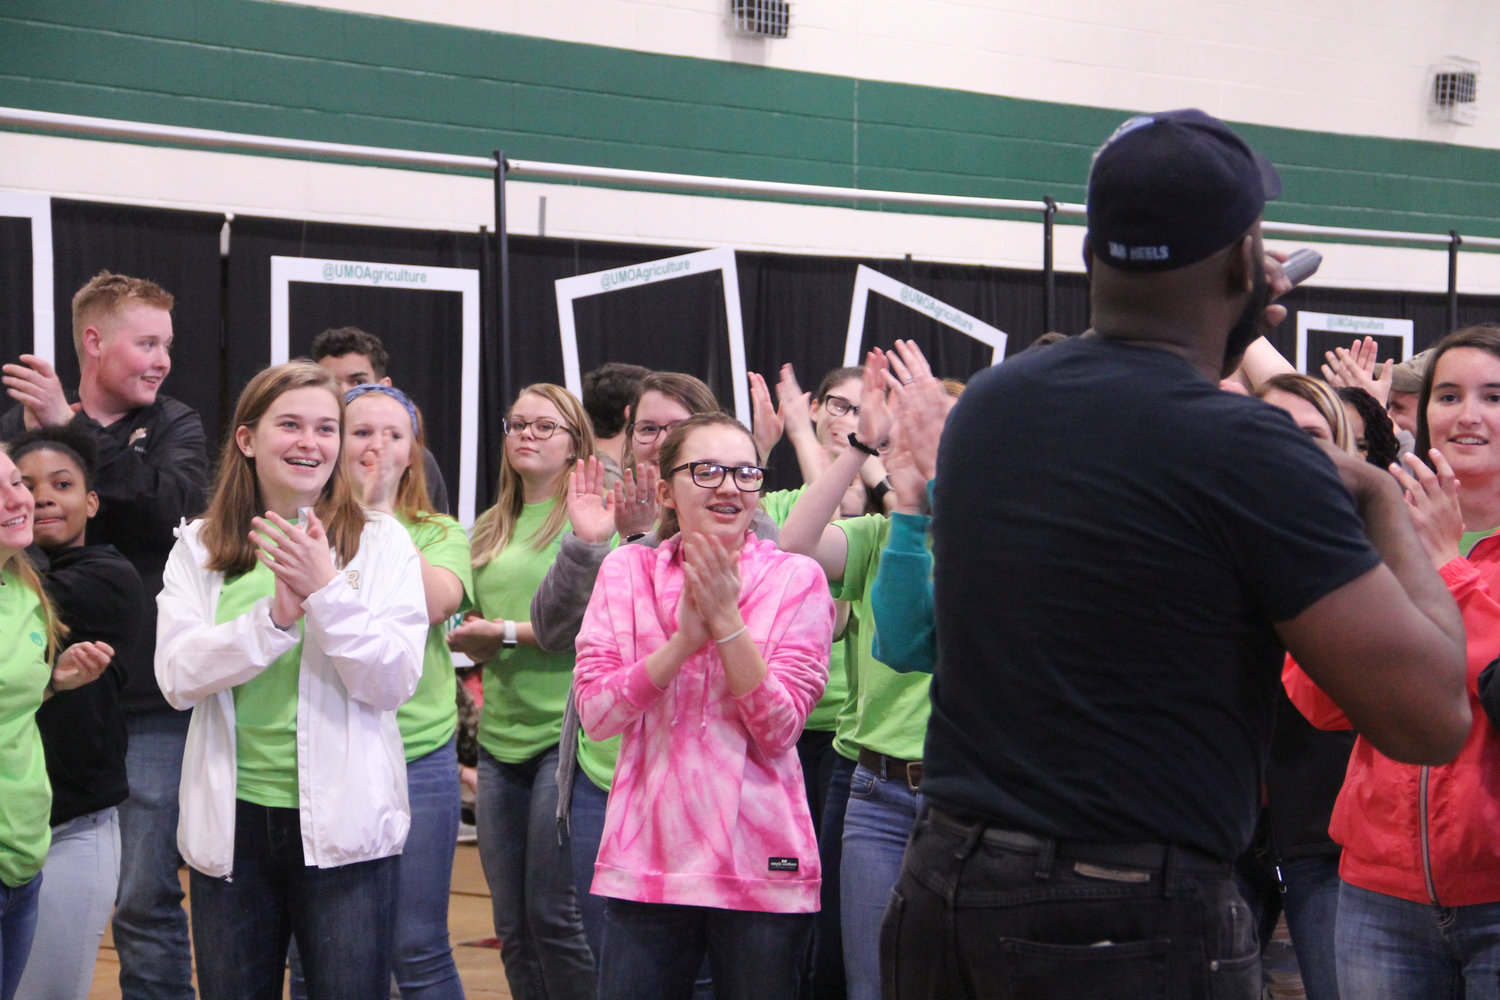 DJ Sweet and Nice LJ hyping the crowd up for a dance-off in the Pope Wellness Center yesterday at AgFest.